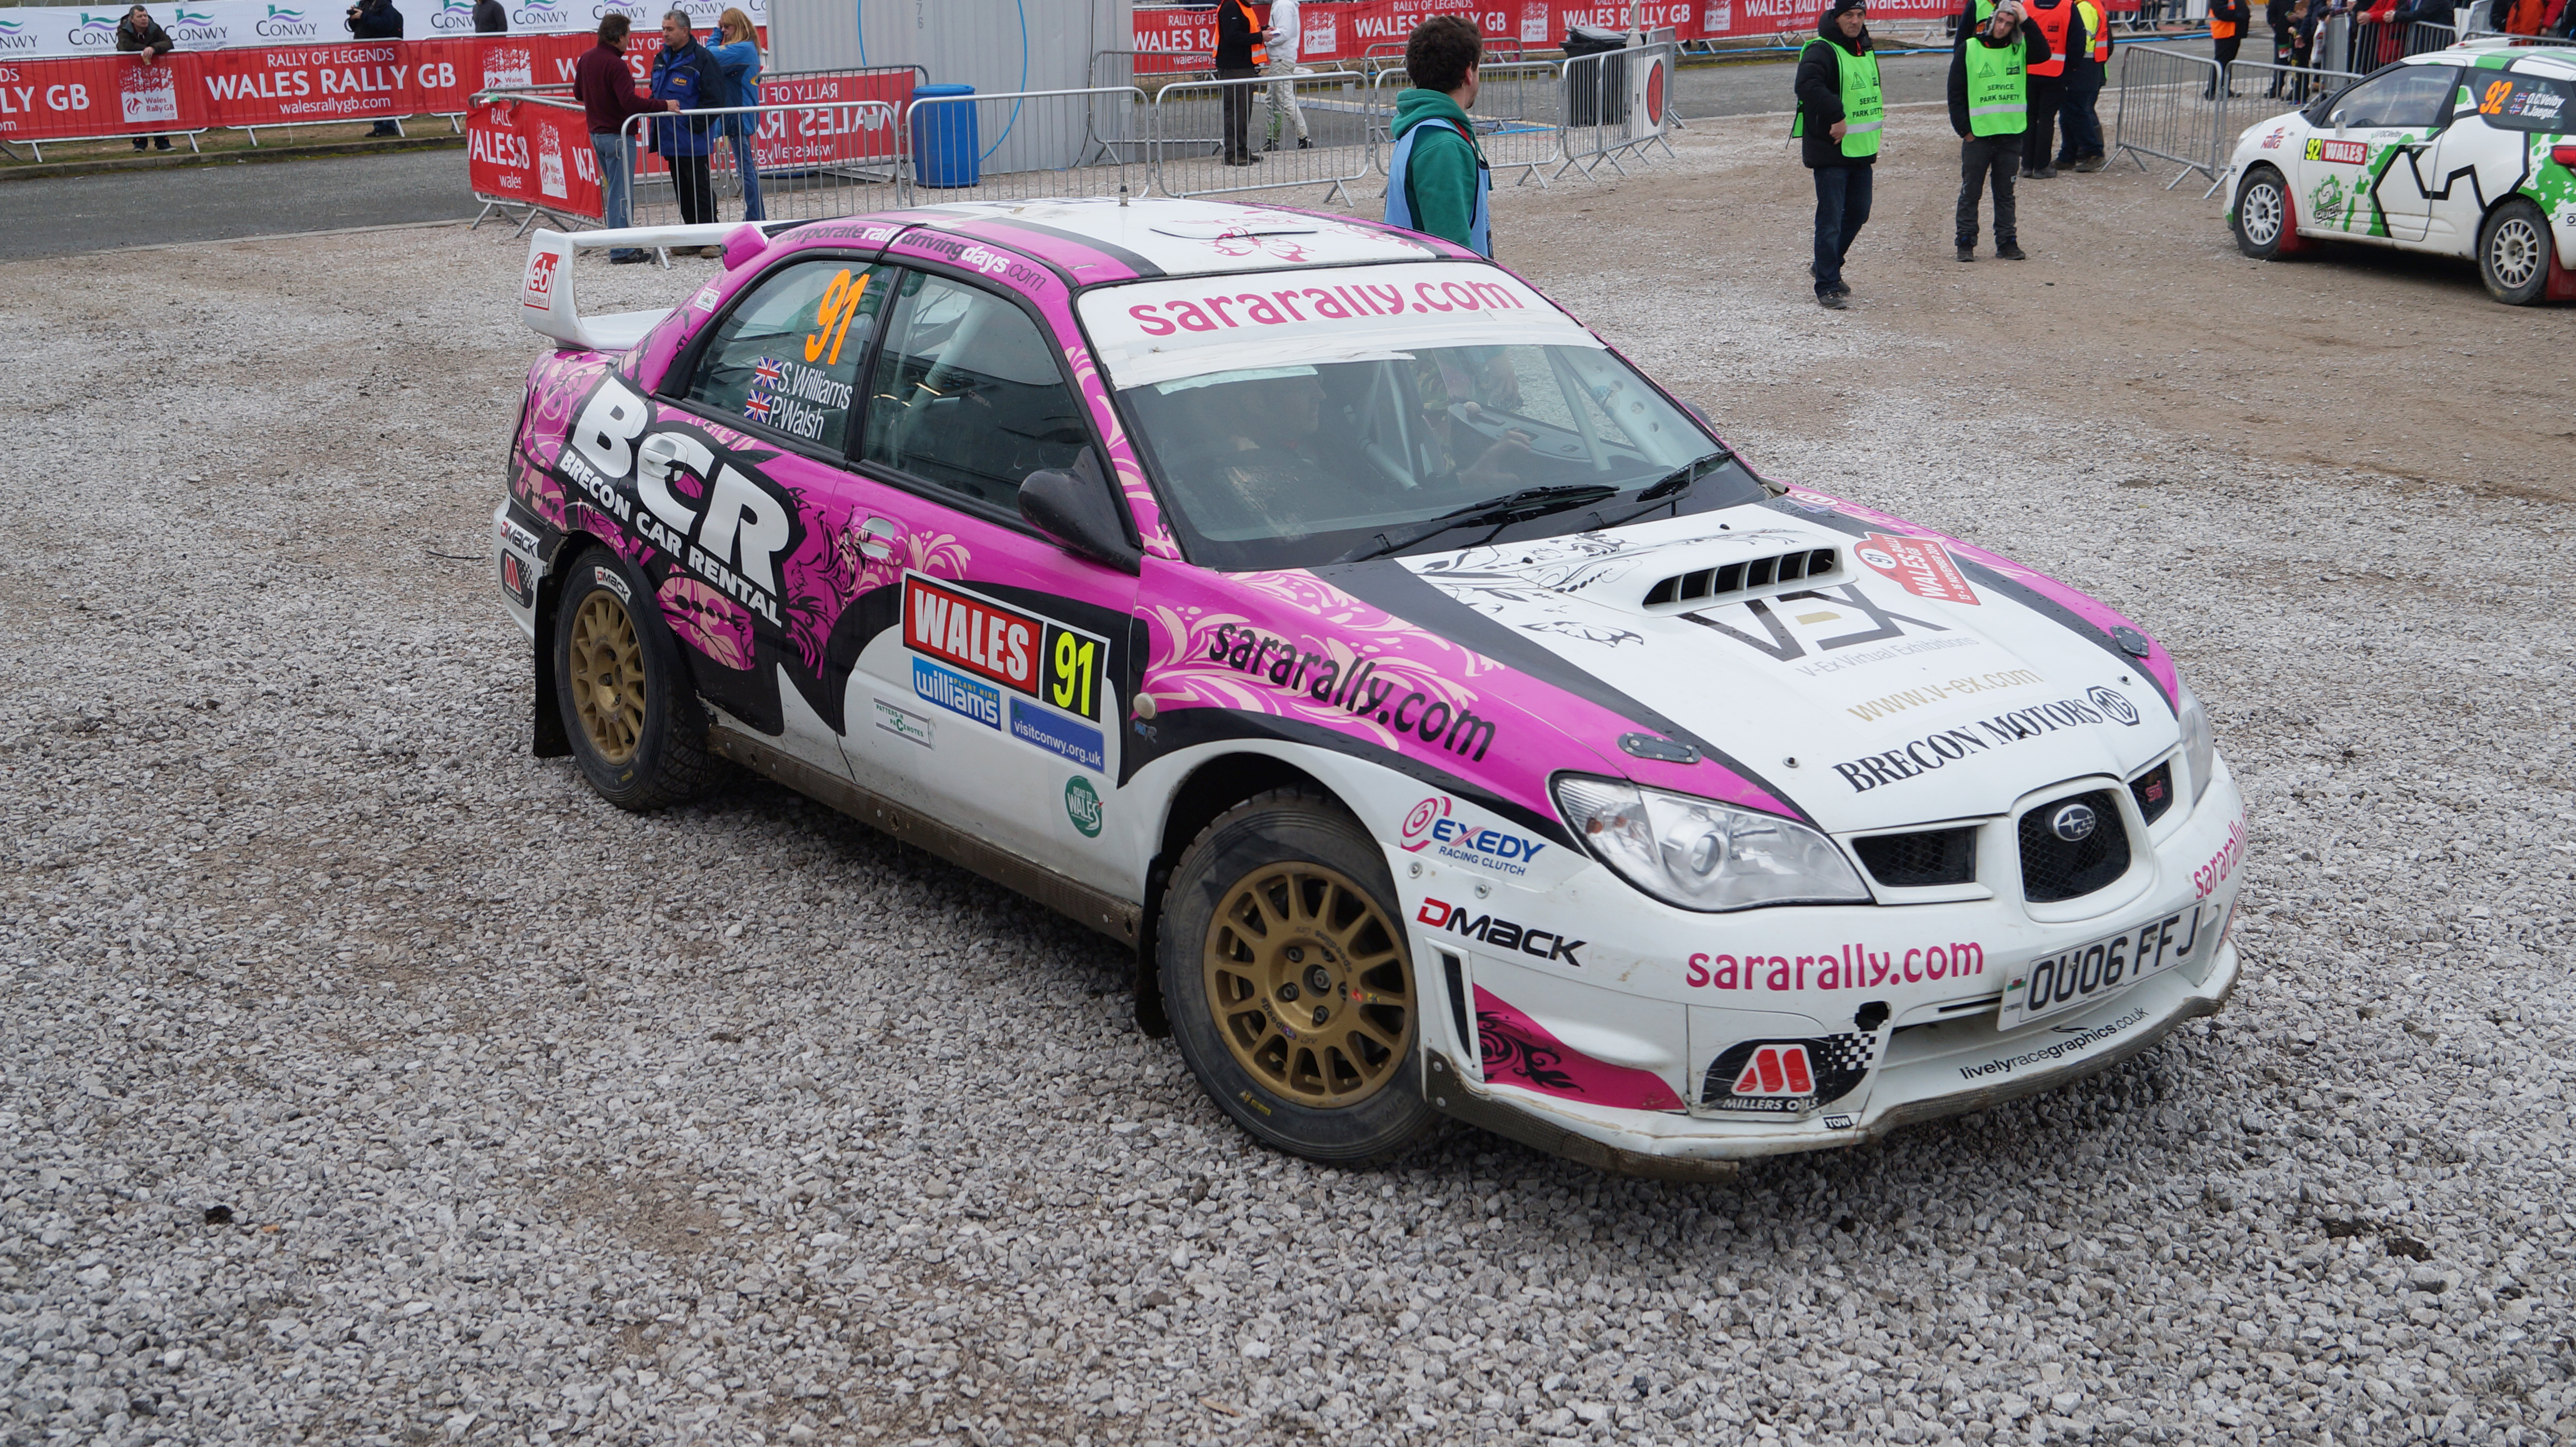 Britain's #1 Female Rally Driver to Compete at the Somerset Rally, 18th April 2015